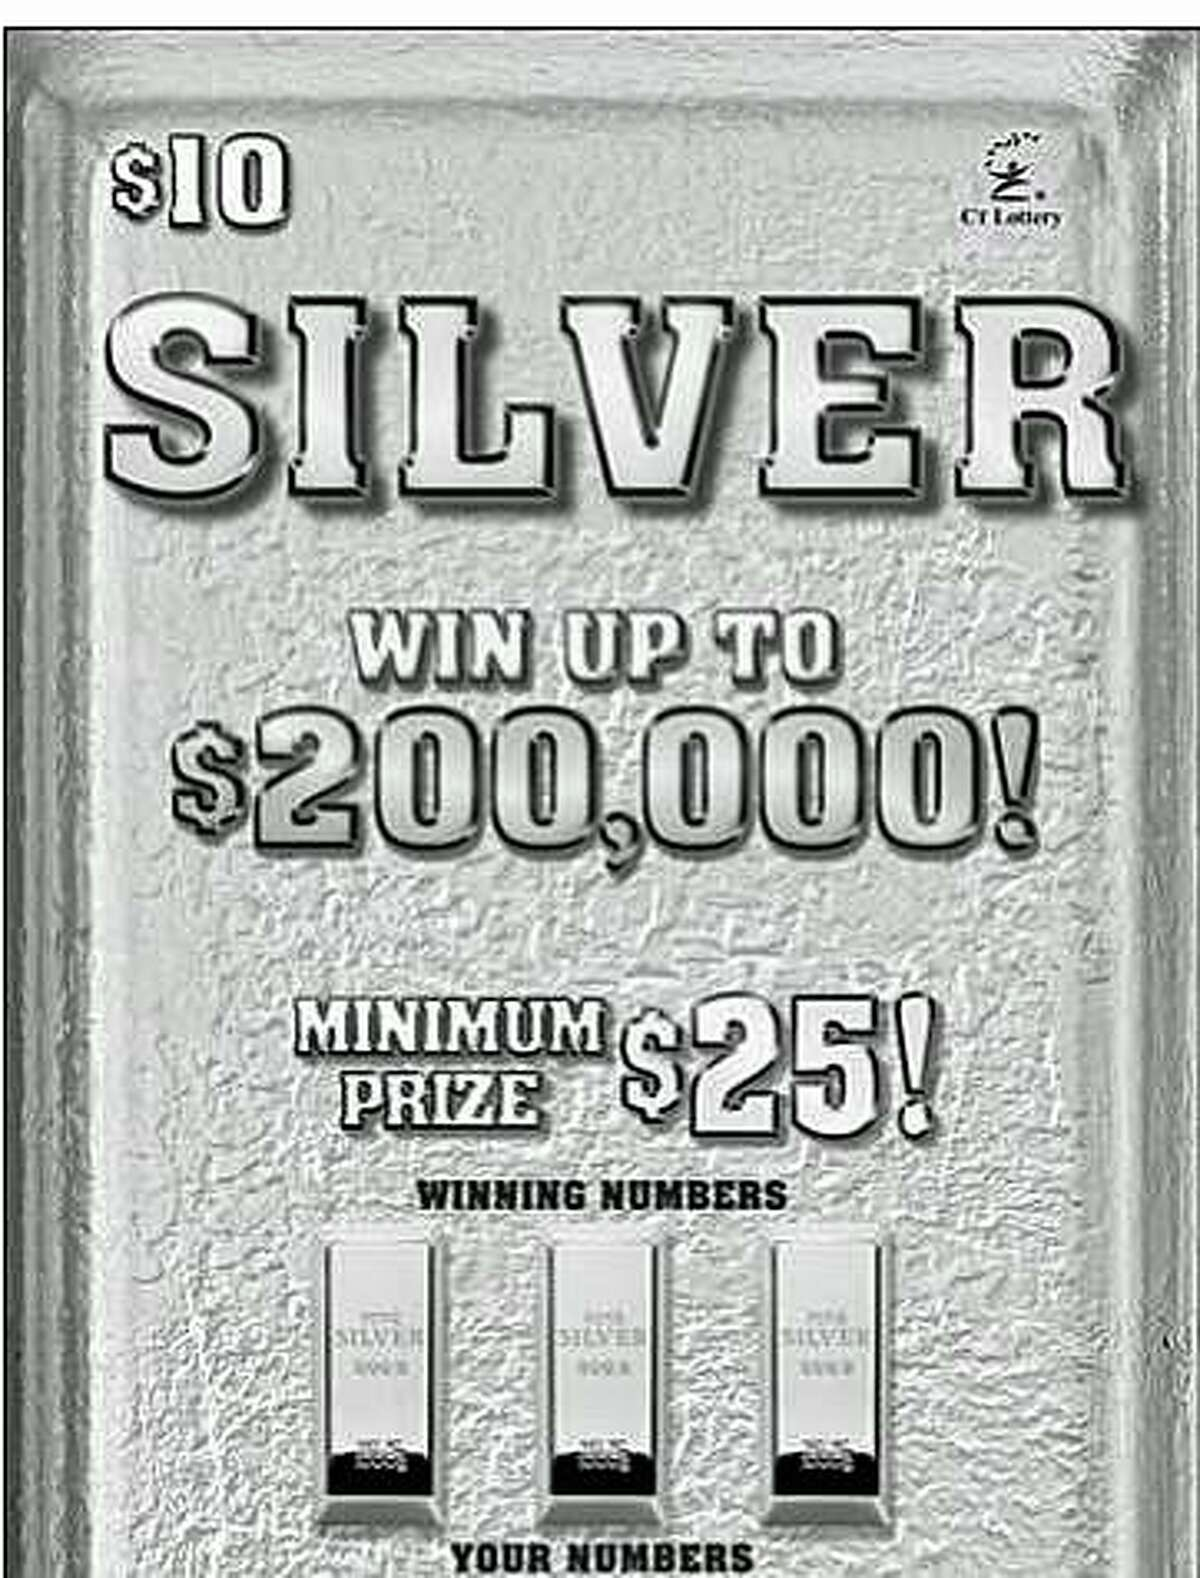 A Stamford woman, who bought a lottery ticket at Stop & Shop ended up winning $200,000.